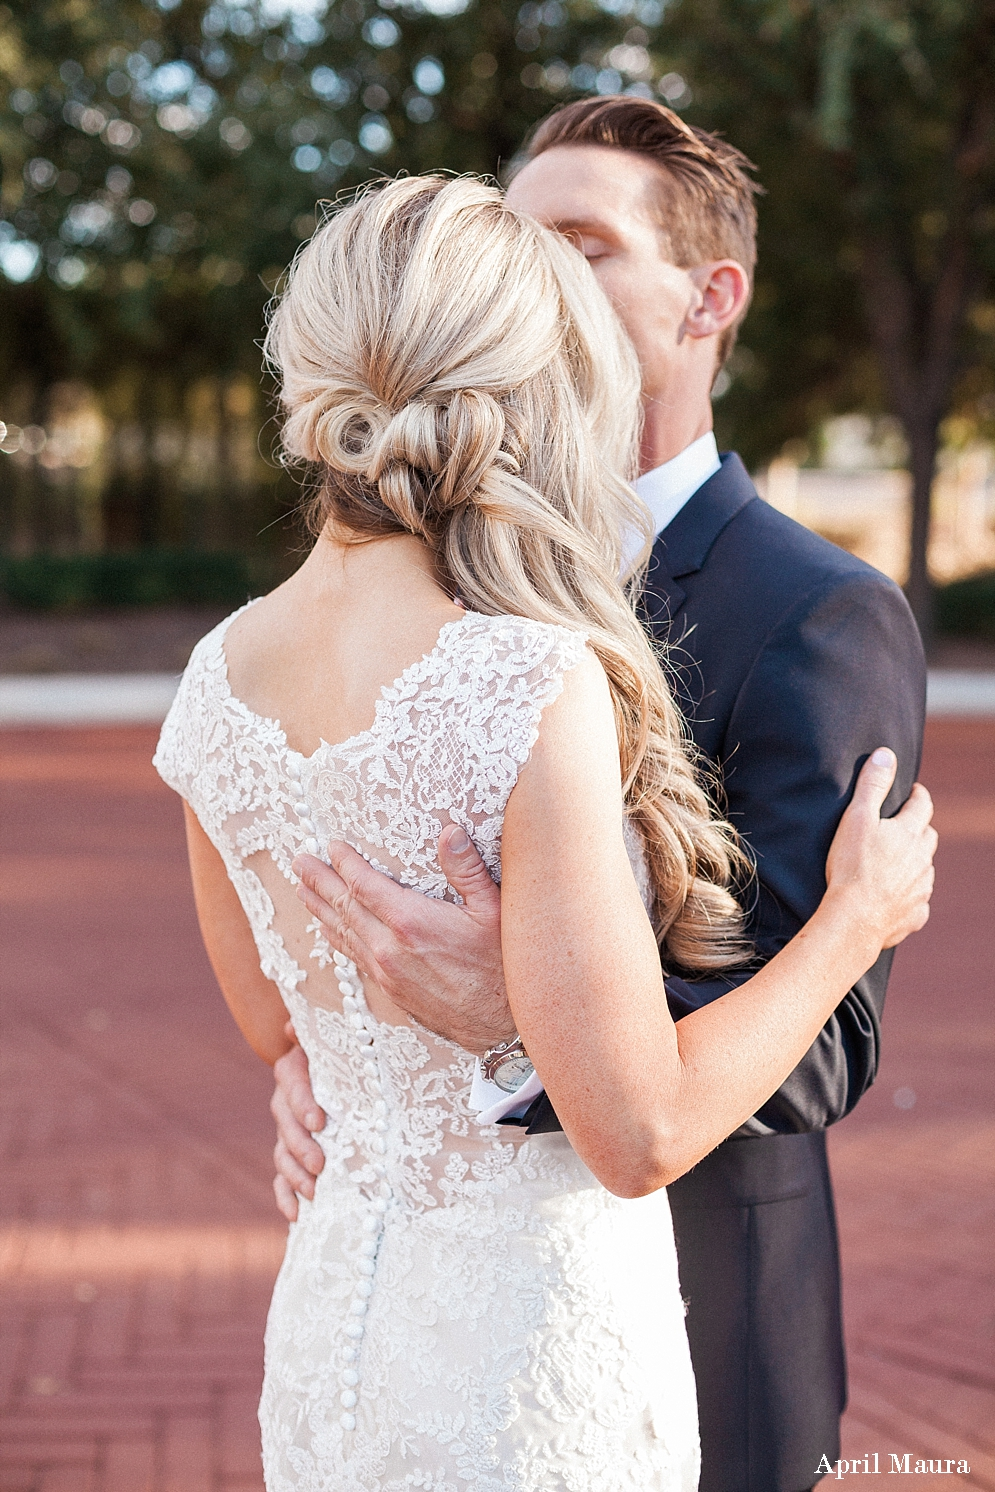 5 Of The Best Hairstyles For Stunning 2017 Wedding Photos St